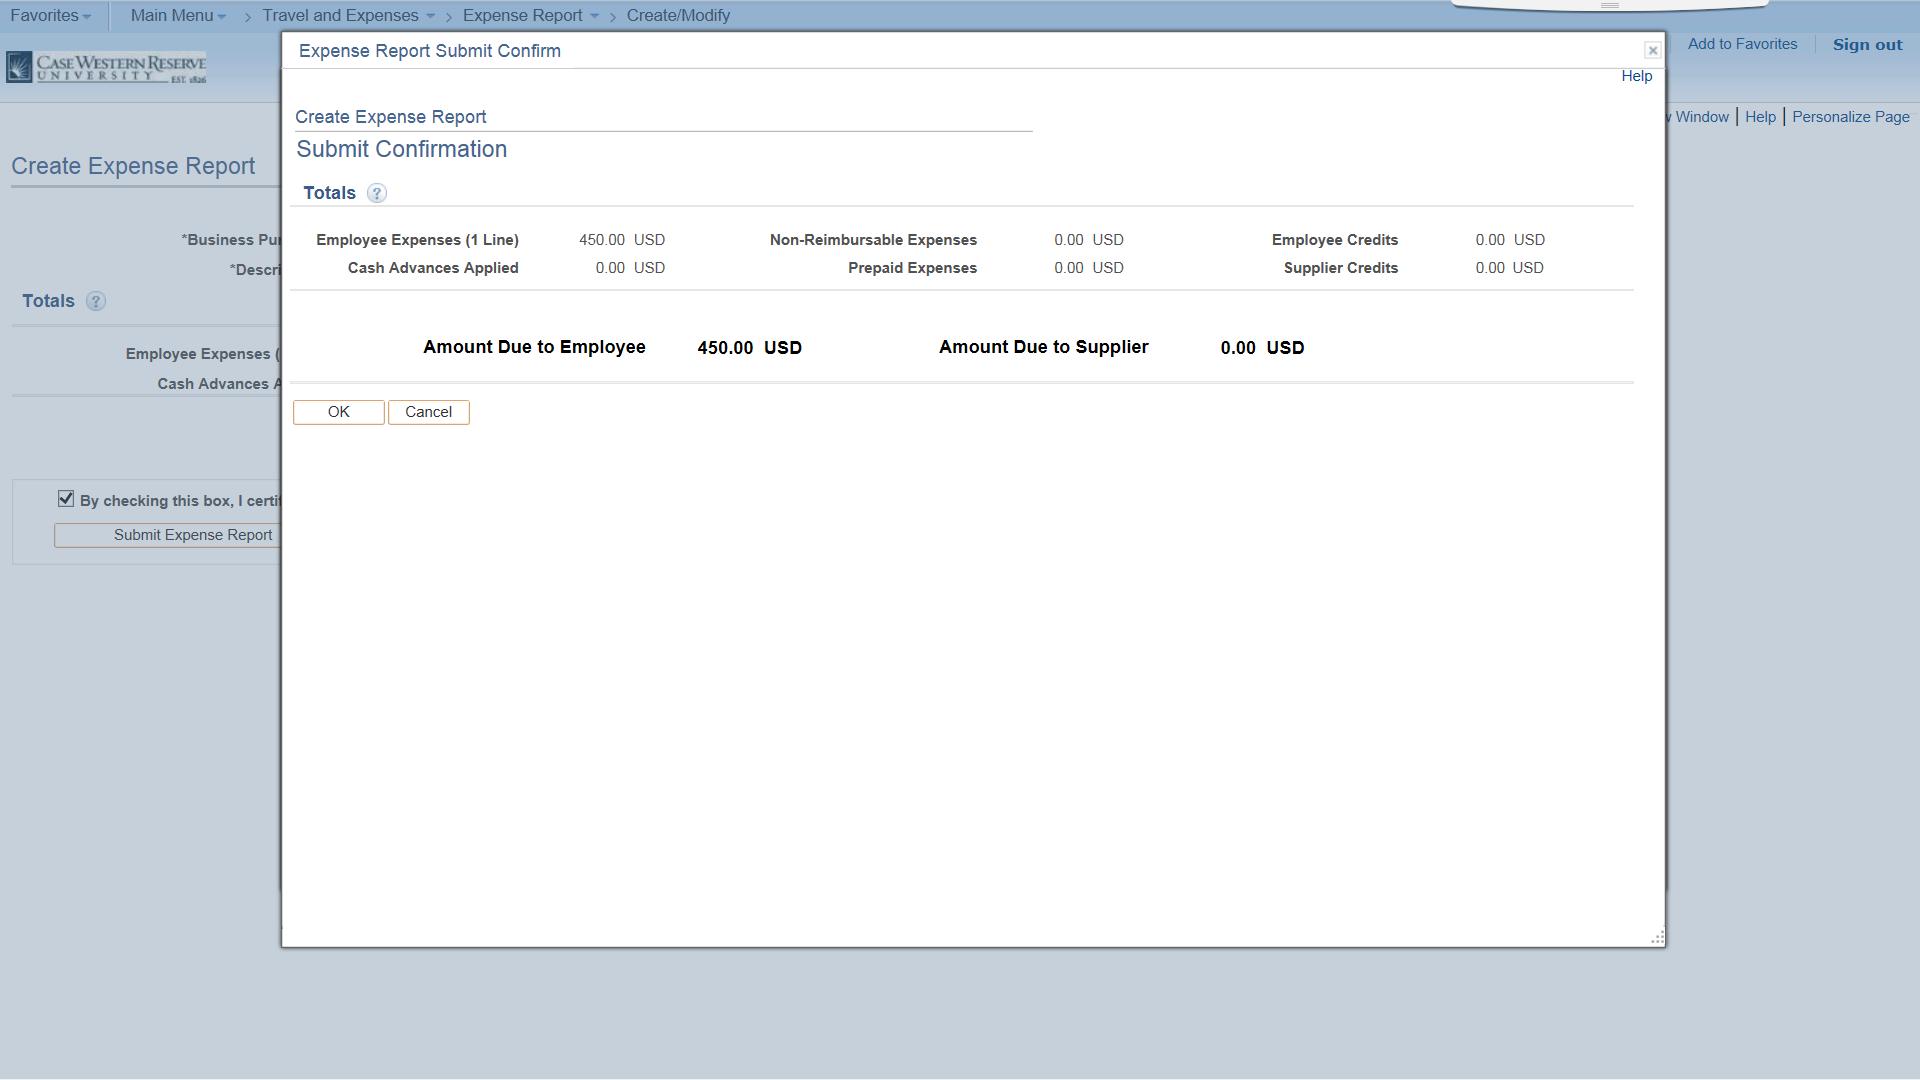 PeopleSoft Financials screen shot displaying expense report confirmation